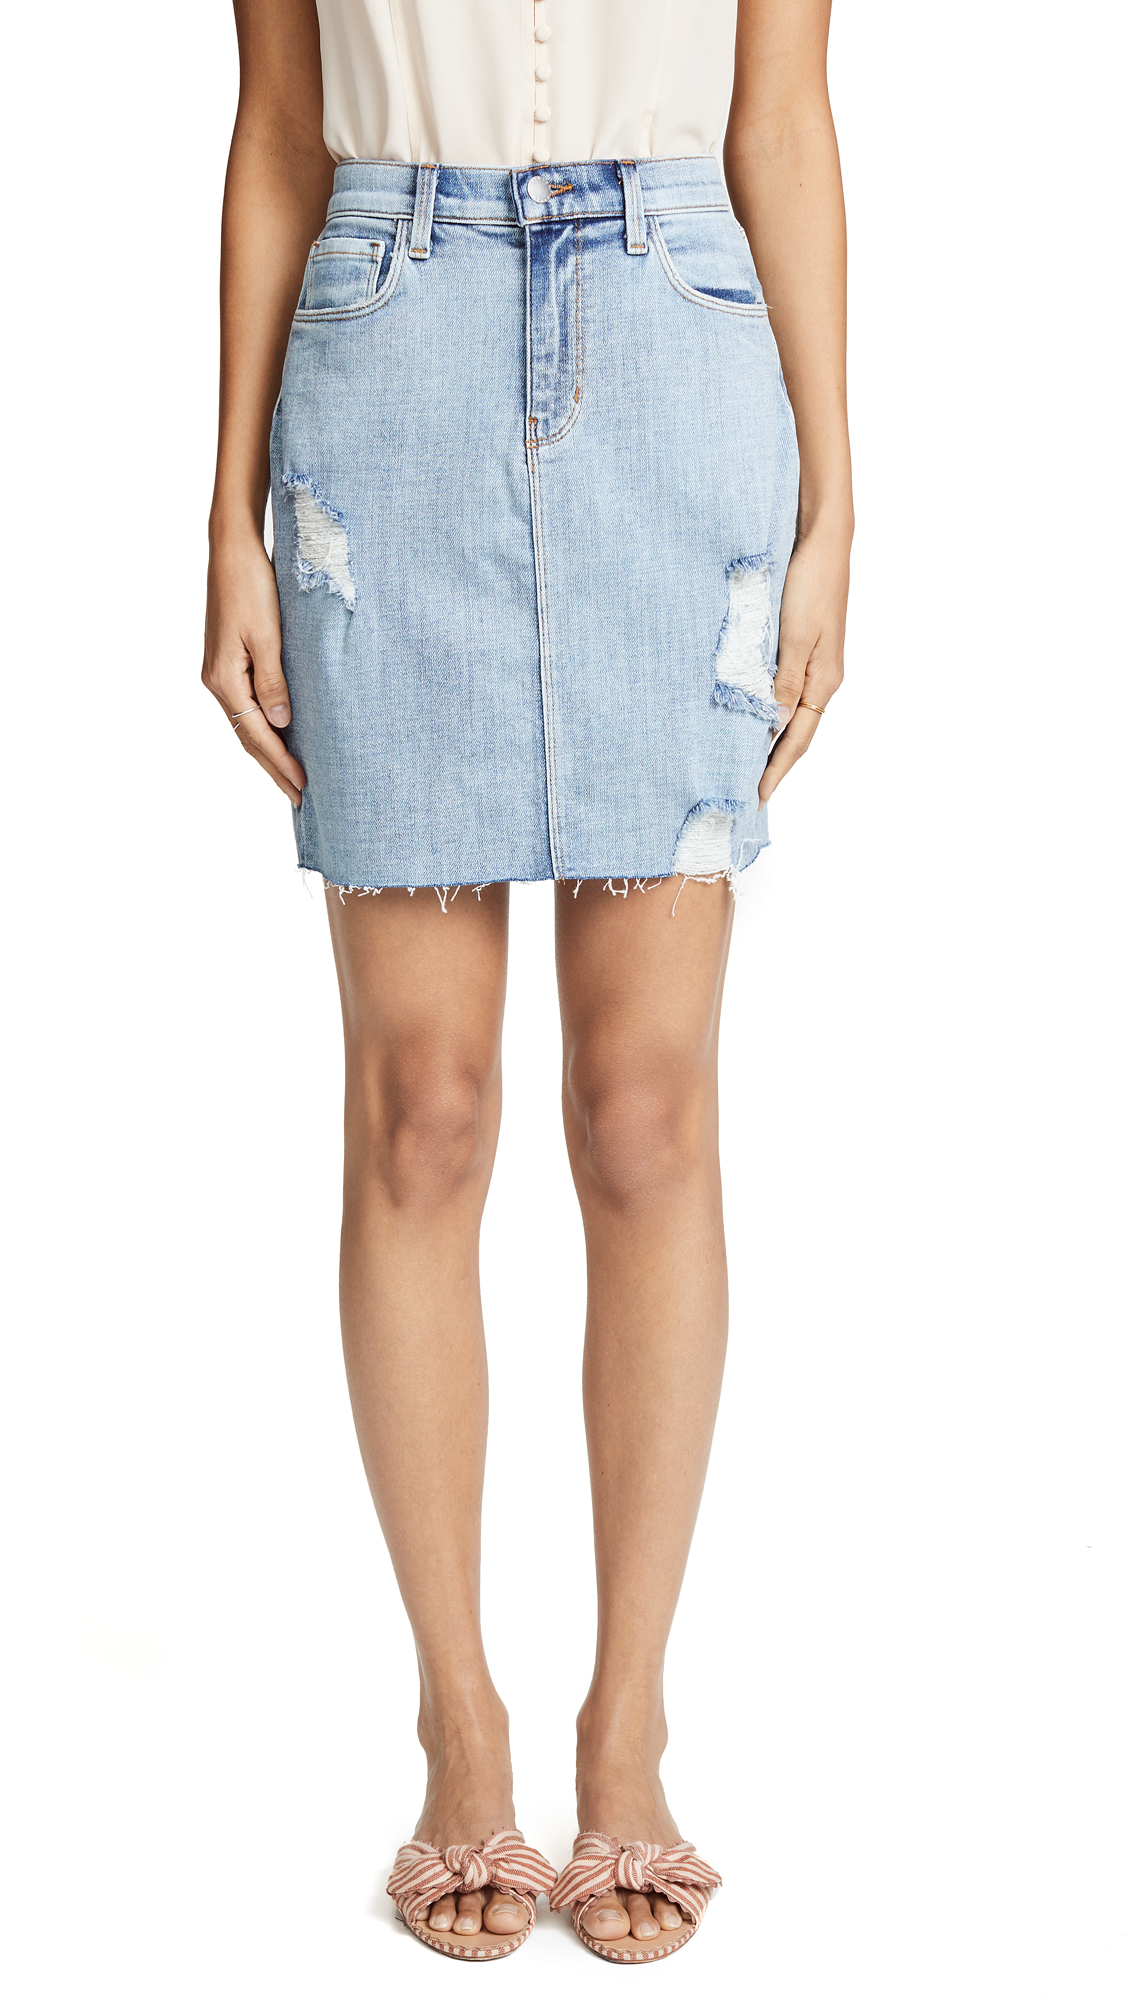 L'AGENCE Manuela High Rise Skirt In Bluebird Destruct